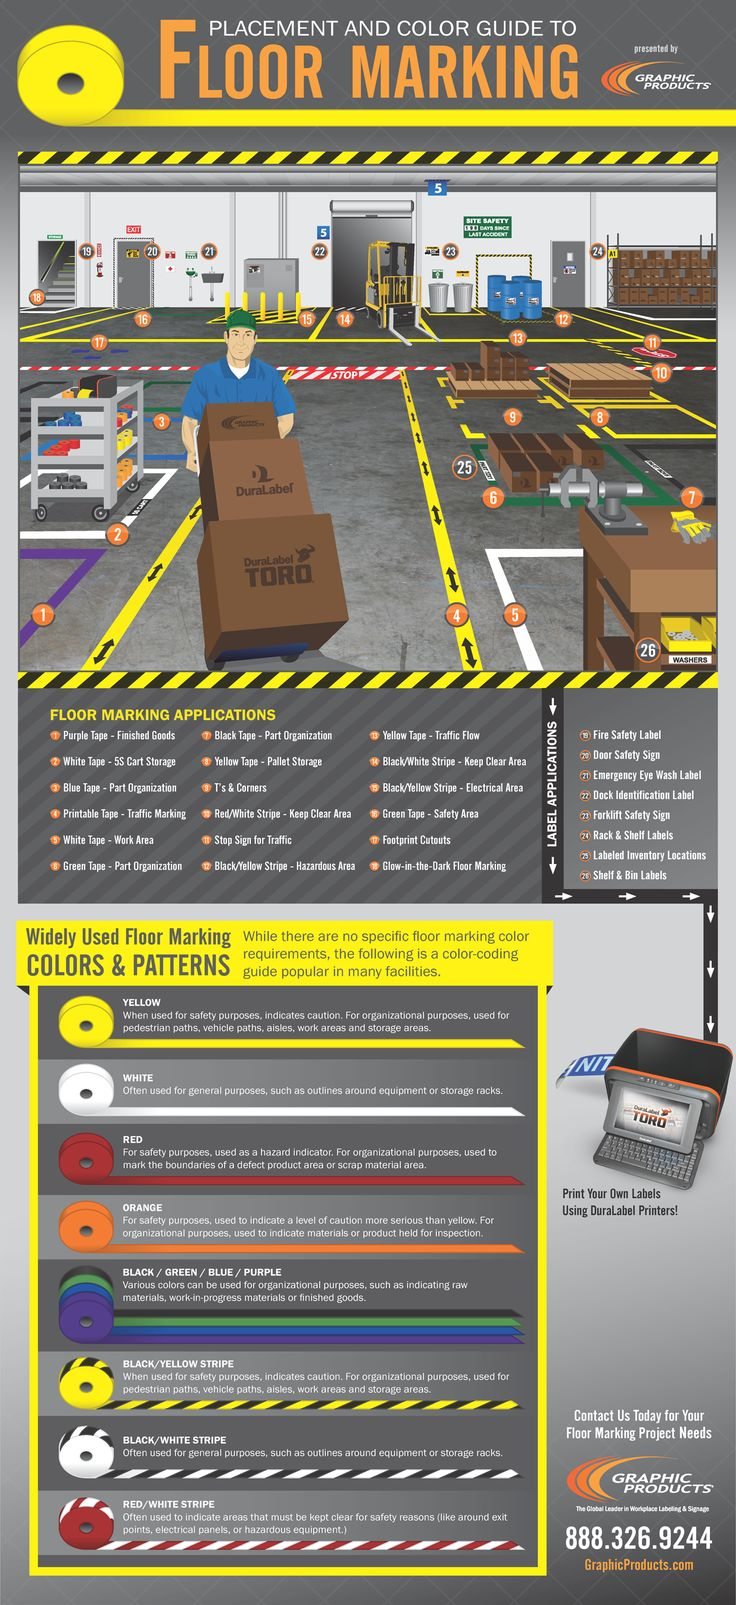 Graphic Products Floor Marking productivity